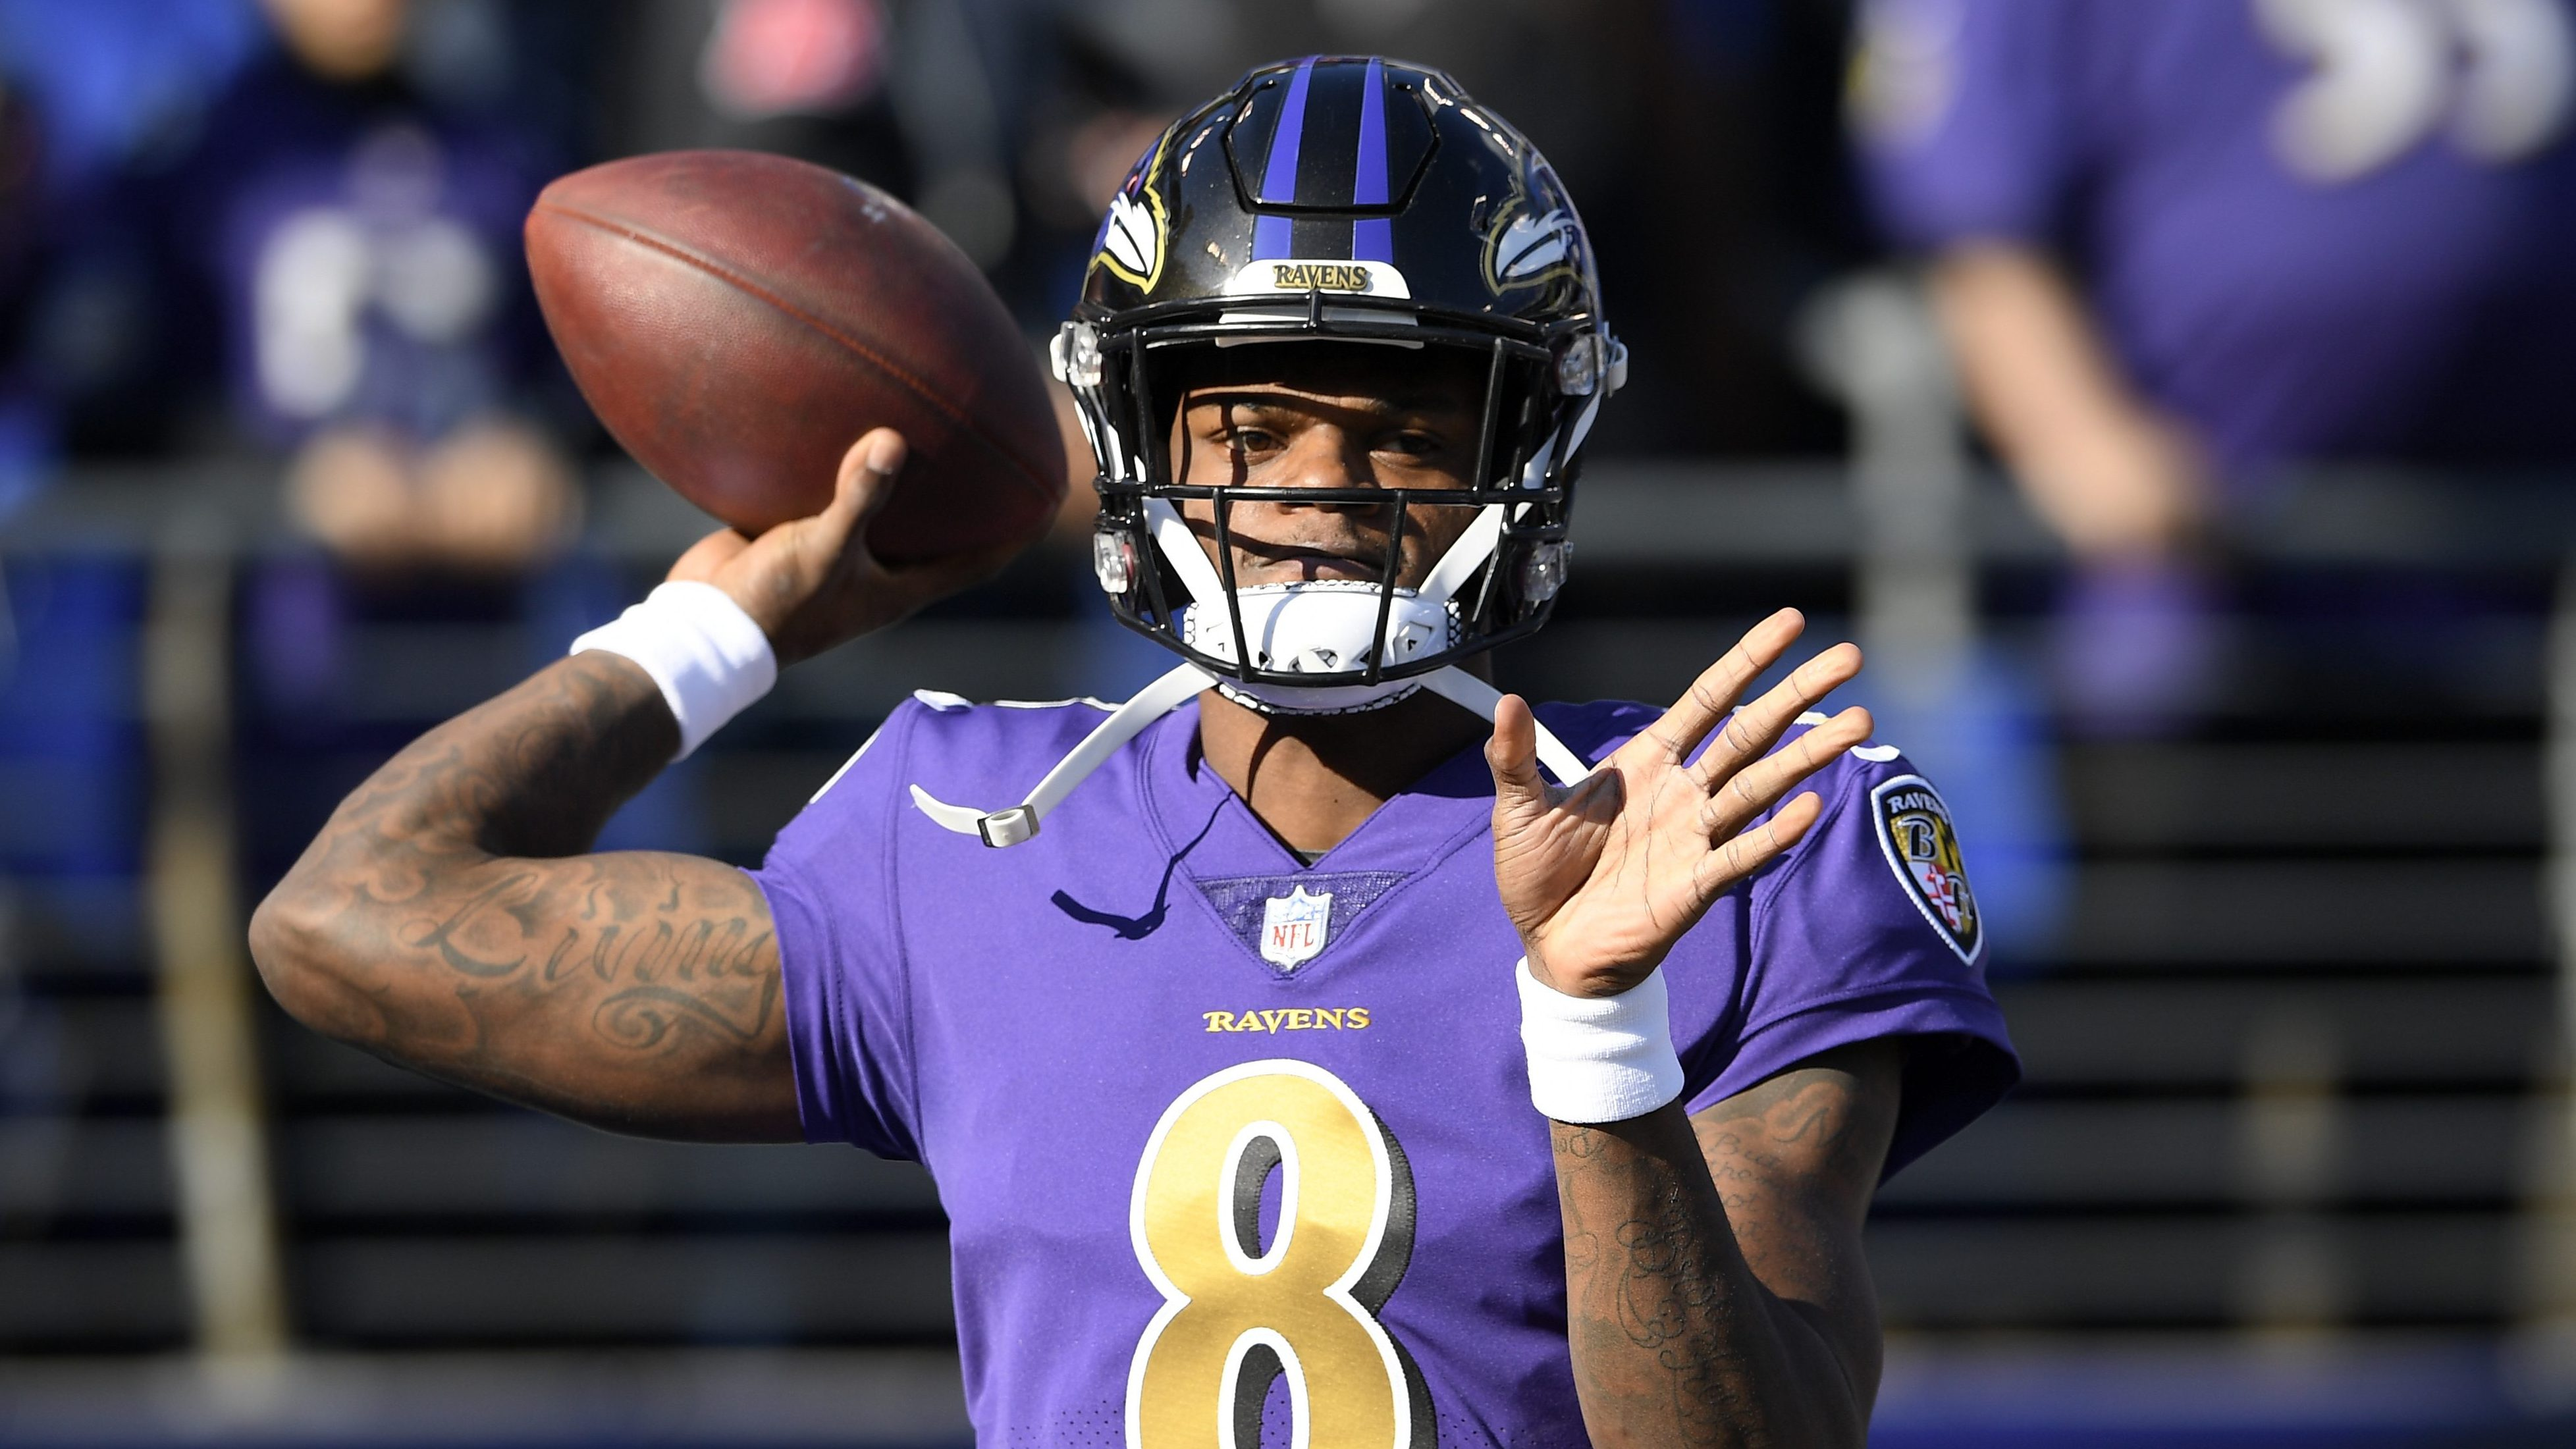 Why Lamar Jackson will be better than Michael Vick